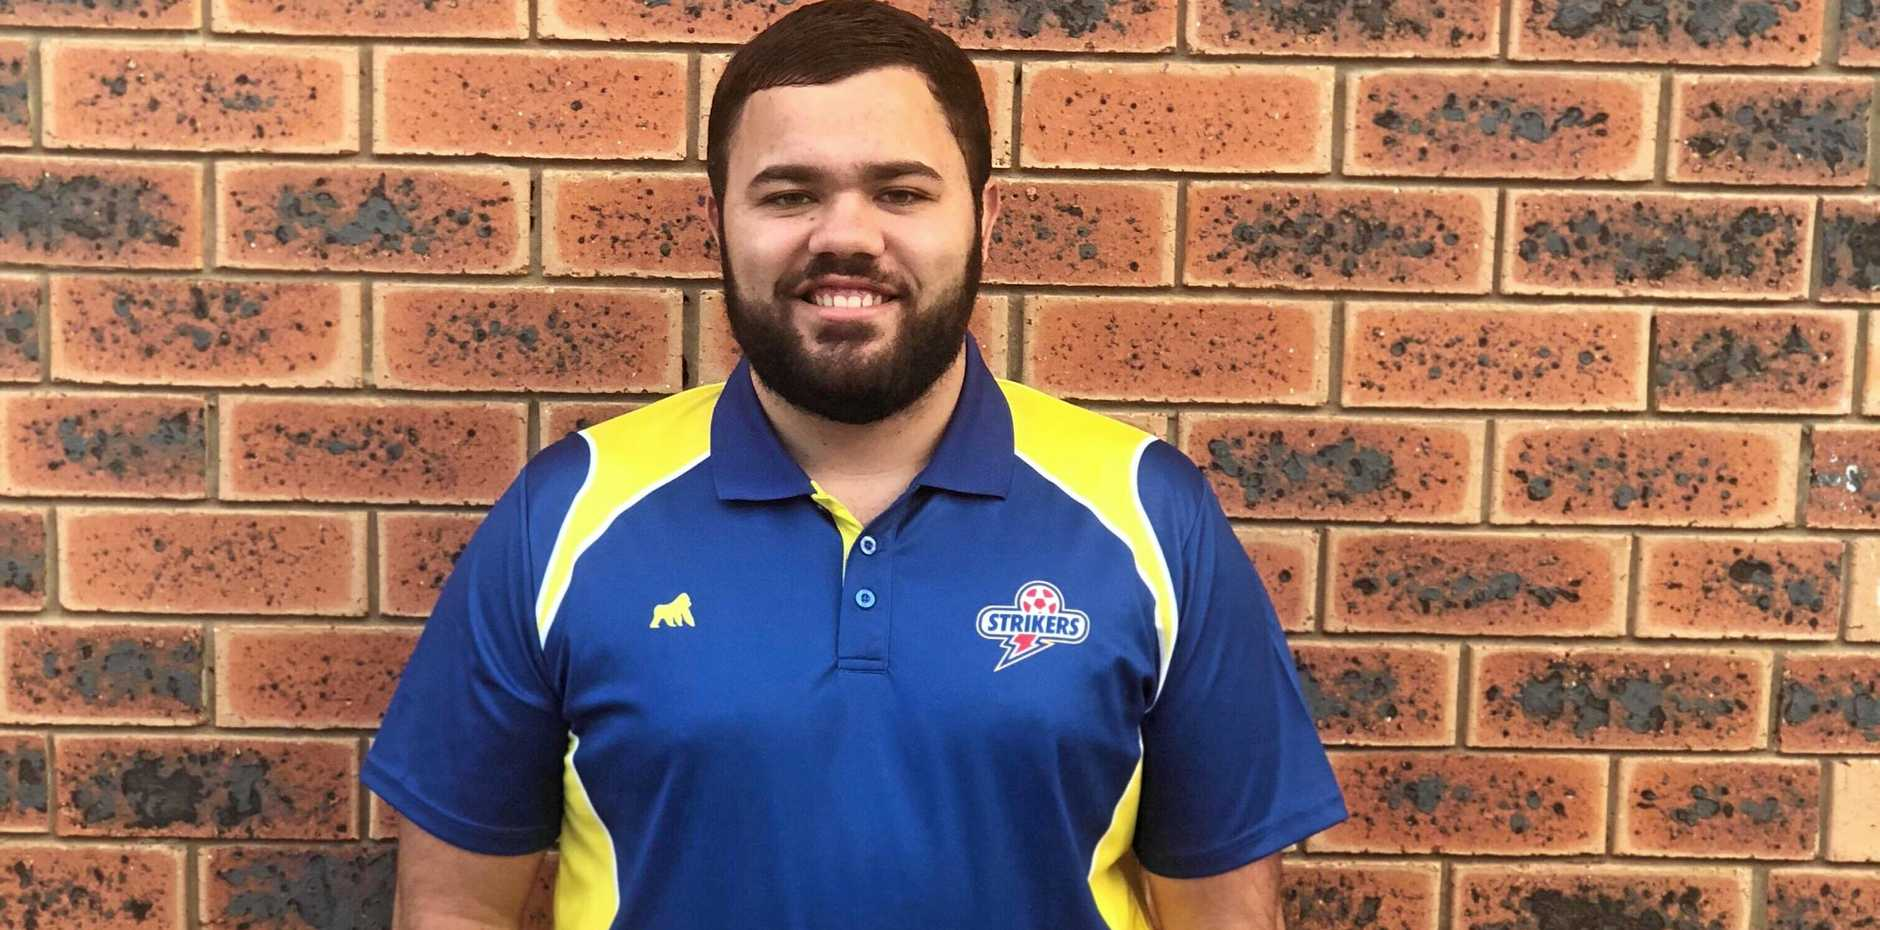 NEW HOME: Former Sunbury Football Club player and Youth coach Justin Linwood has joined NPL club Brisbane Strikers, where he serves as assistant coach for the under-15s and (inset) their first win.